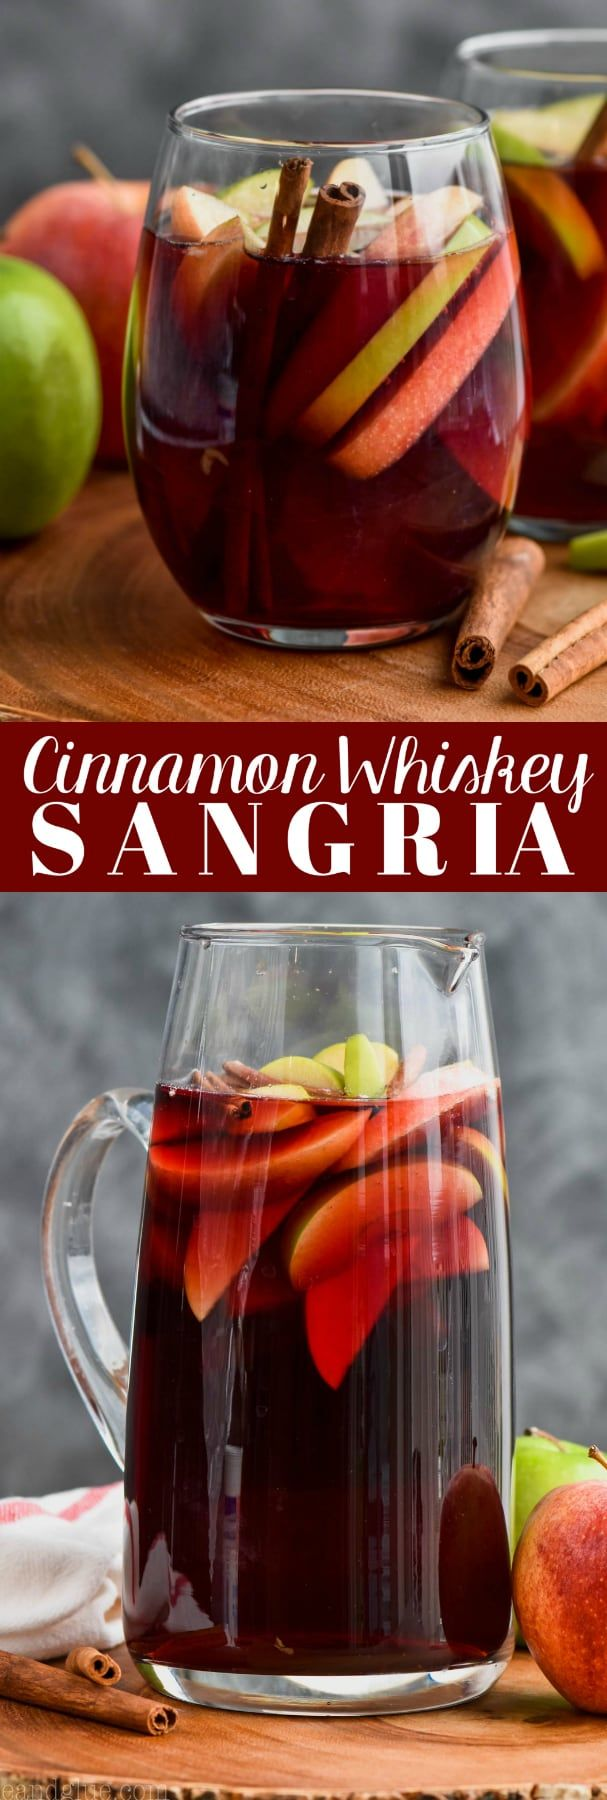 Cinnamon Whiskey Sangria Recipe